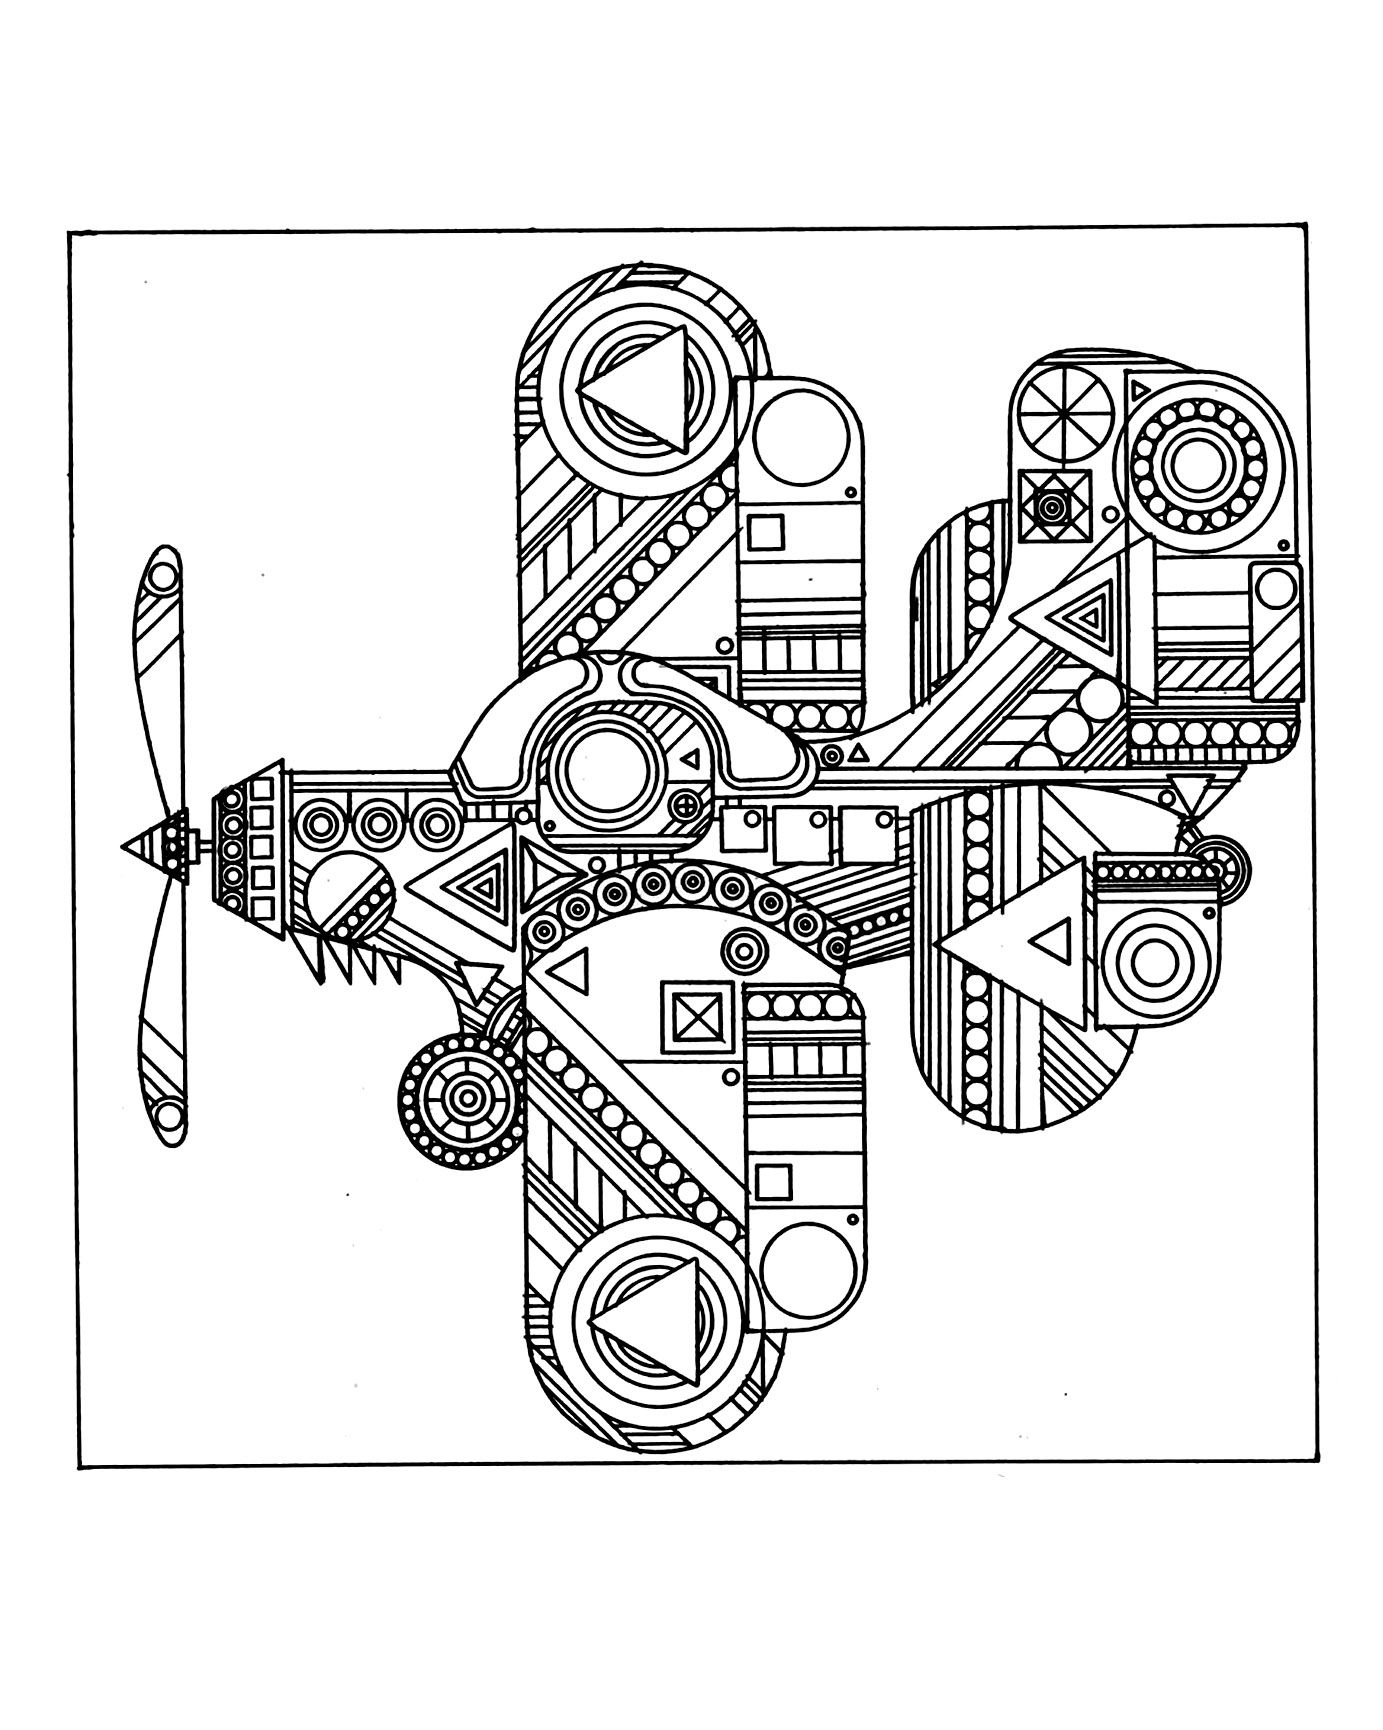 Free Coloring Page 171 Coloring Plane Zen 187 Coloring